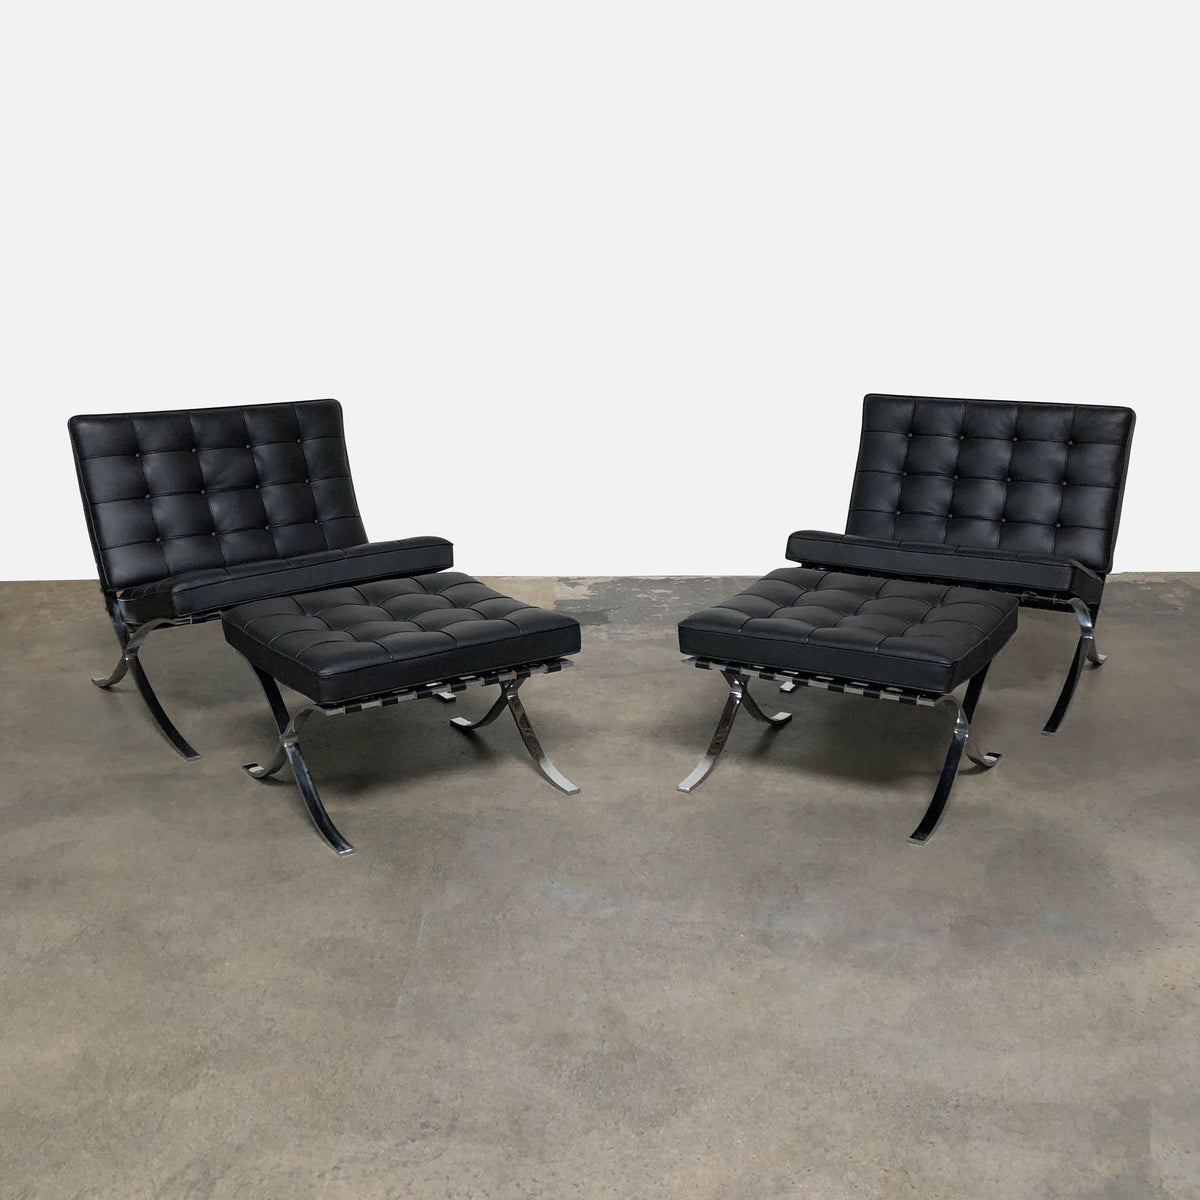 Knoll Black Leather Barcelona Lounge Chair by Ludwig Mies Van Der Rohe